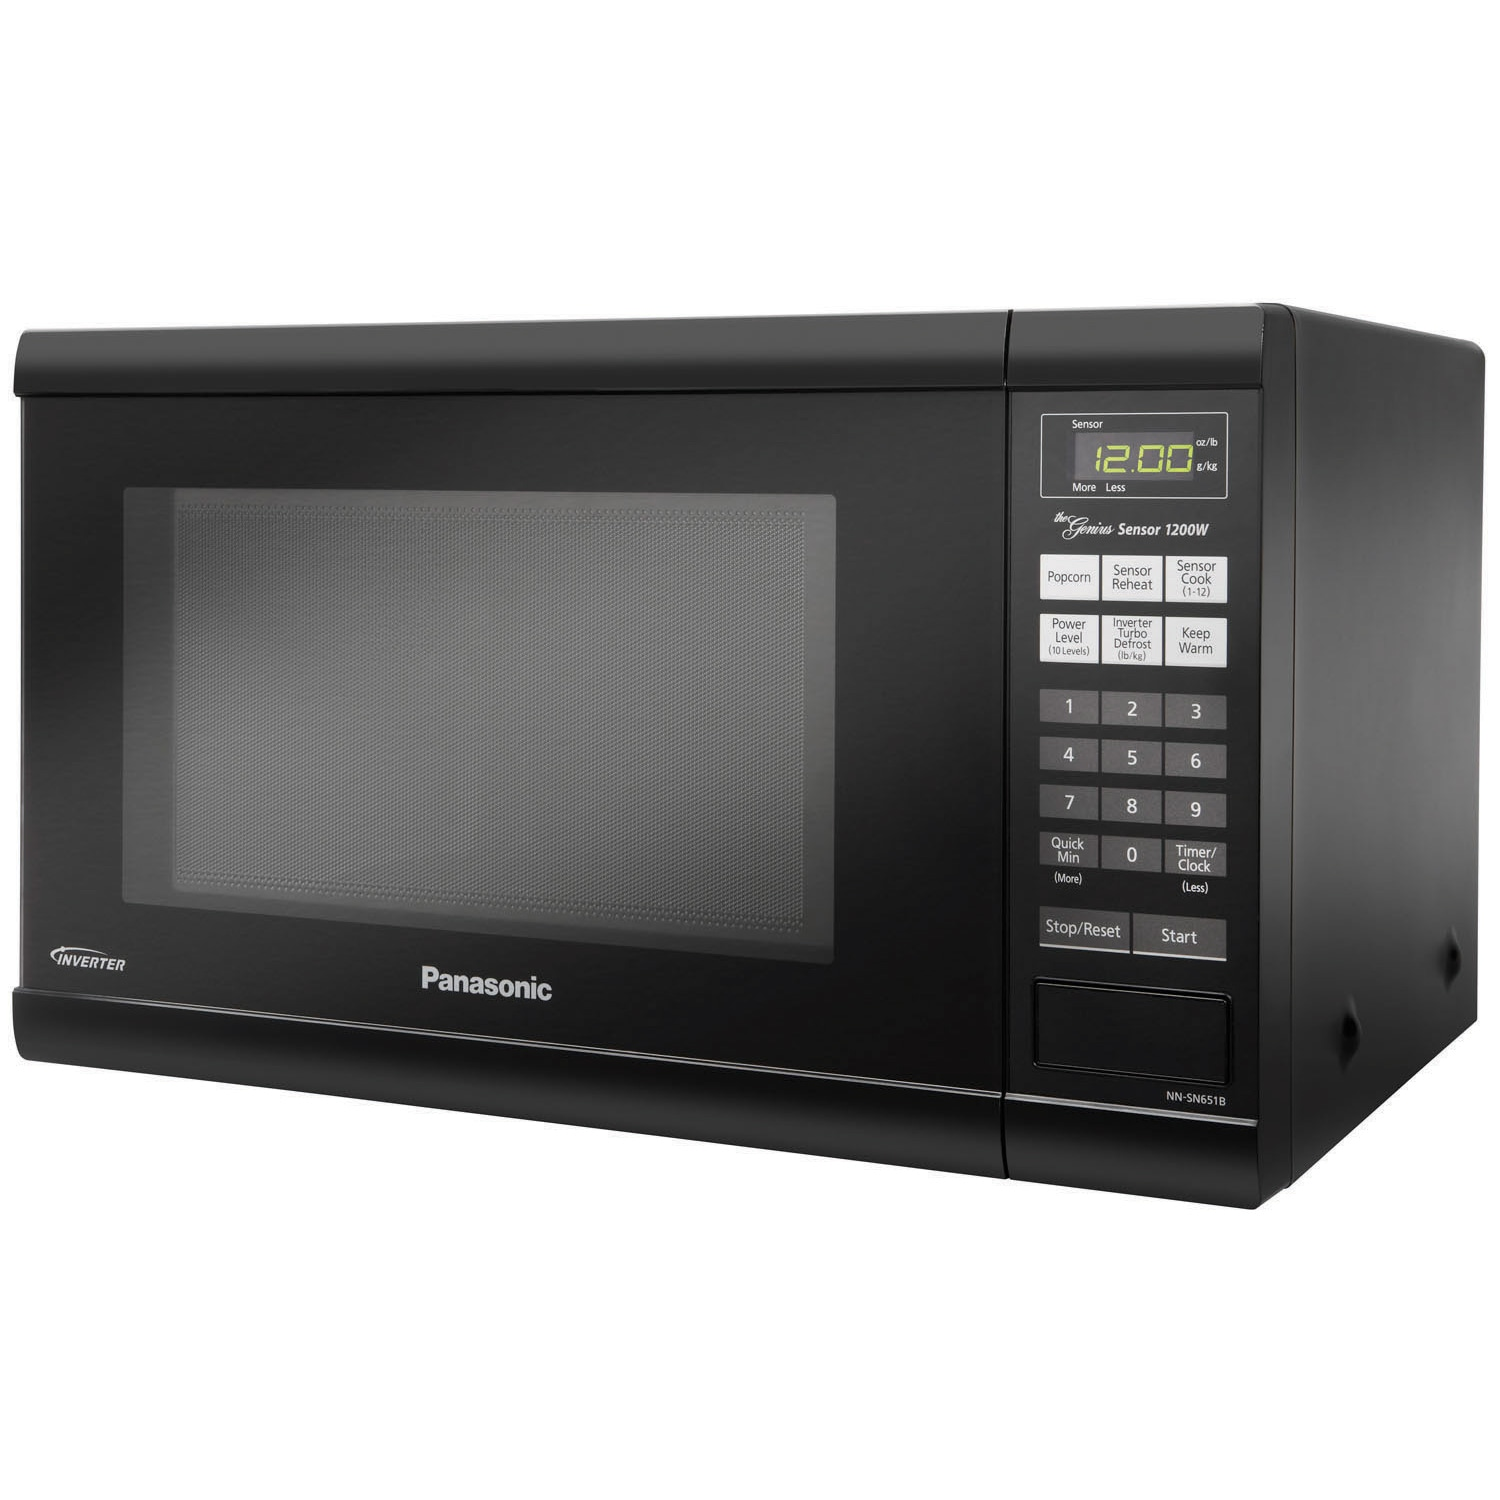 Panasonic Nn Sn651b Countertop Microwave Oven With